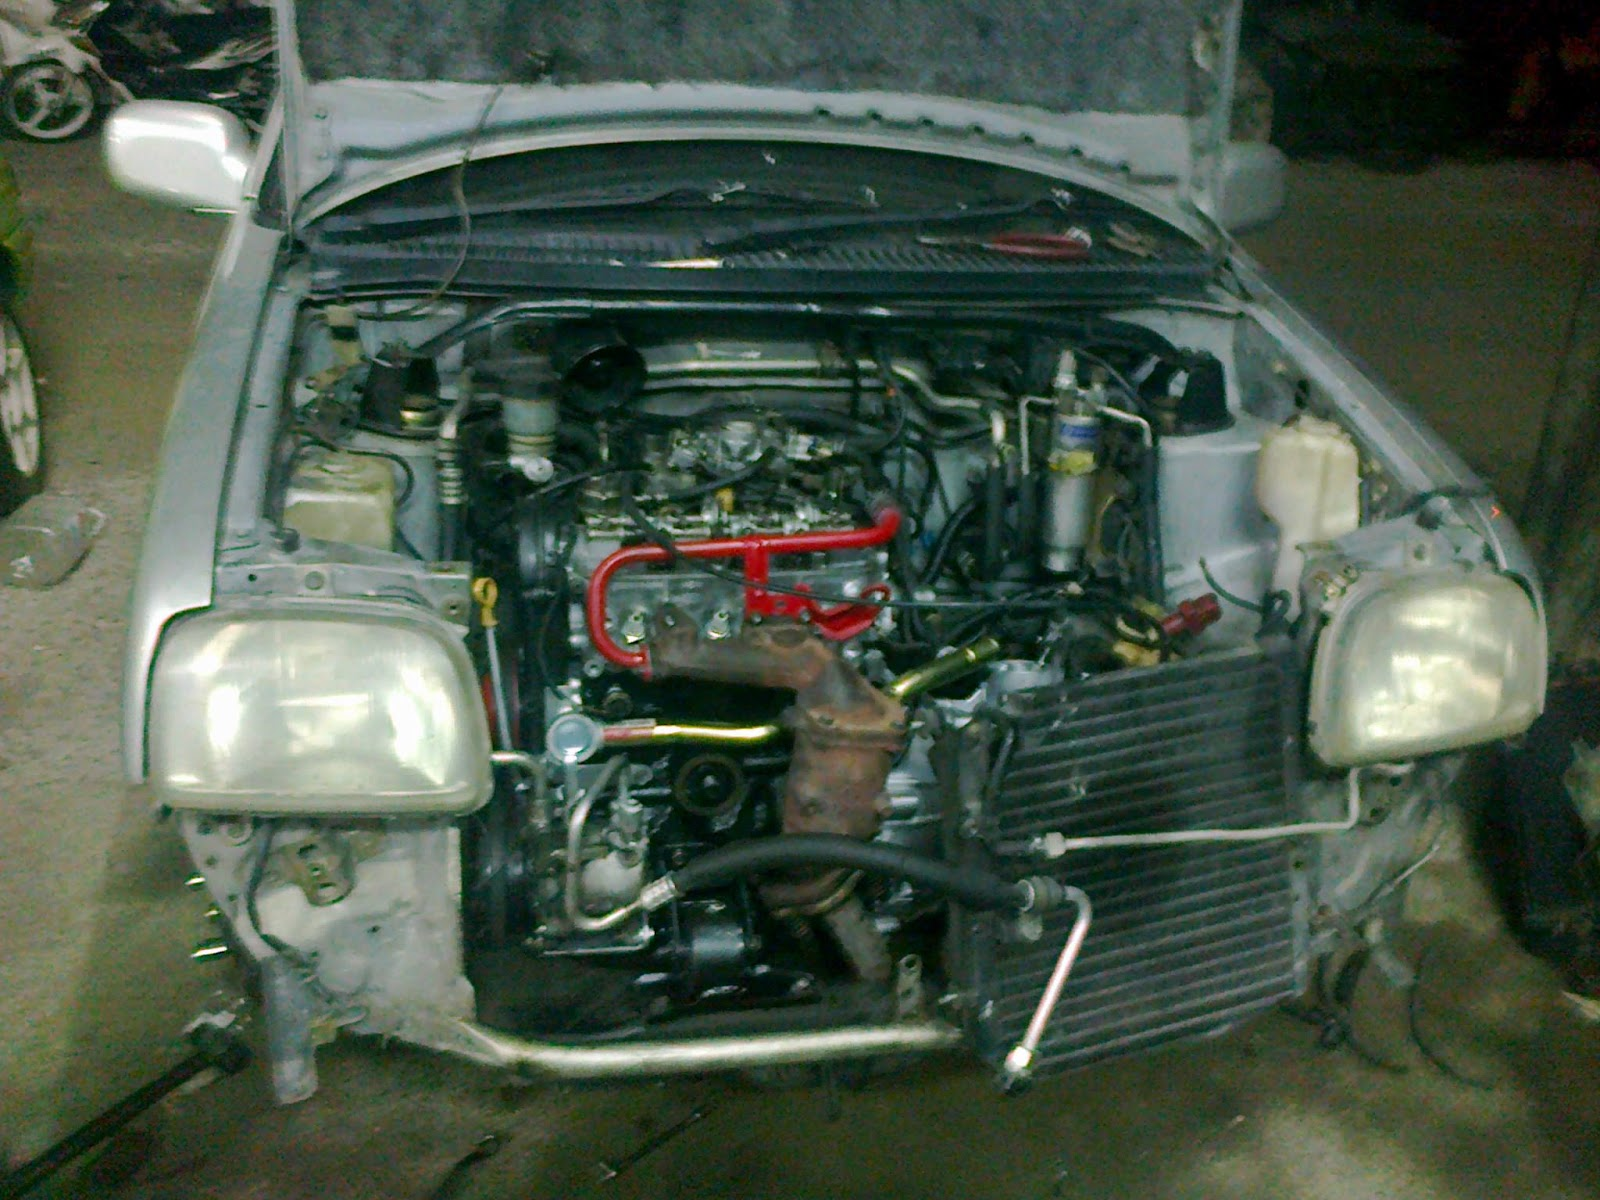 p44 autoworks kancil 850 major overhaul done